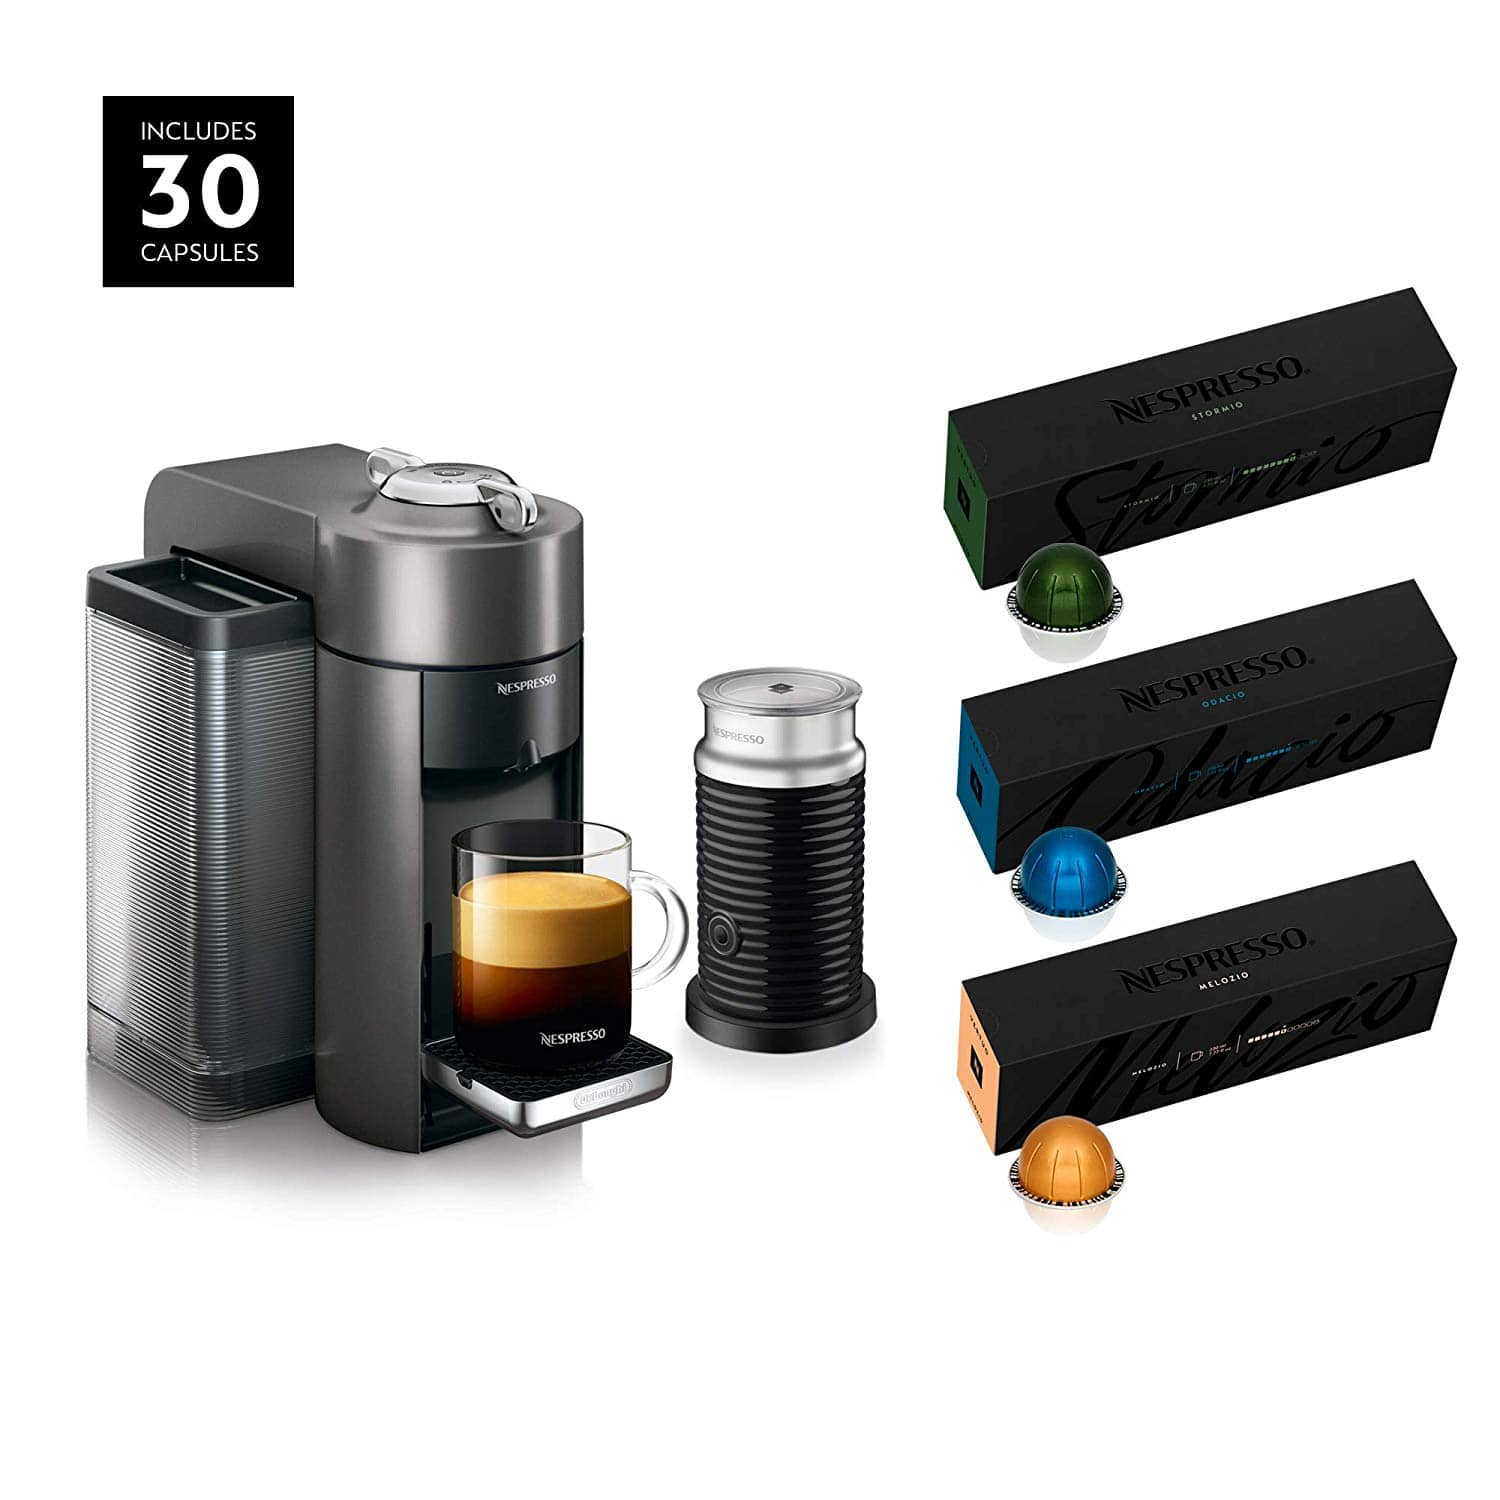 Nespresso Vertuo Coffee and Espresso Machine Bundle by De'Longhi with Aeroccino Milk Frother and BEST SELLING COFFEES INCLUDED $114.99